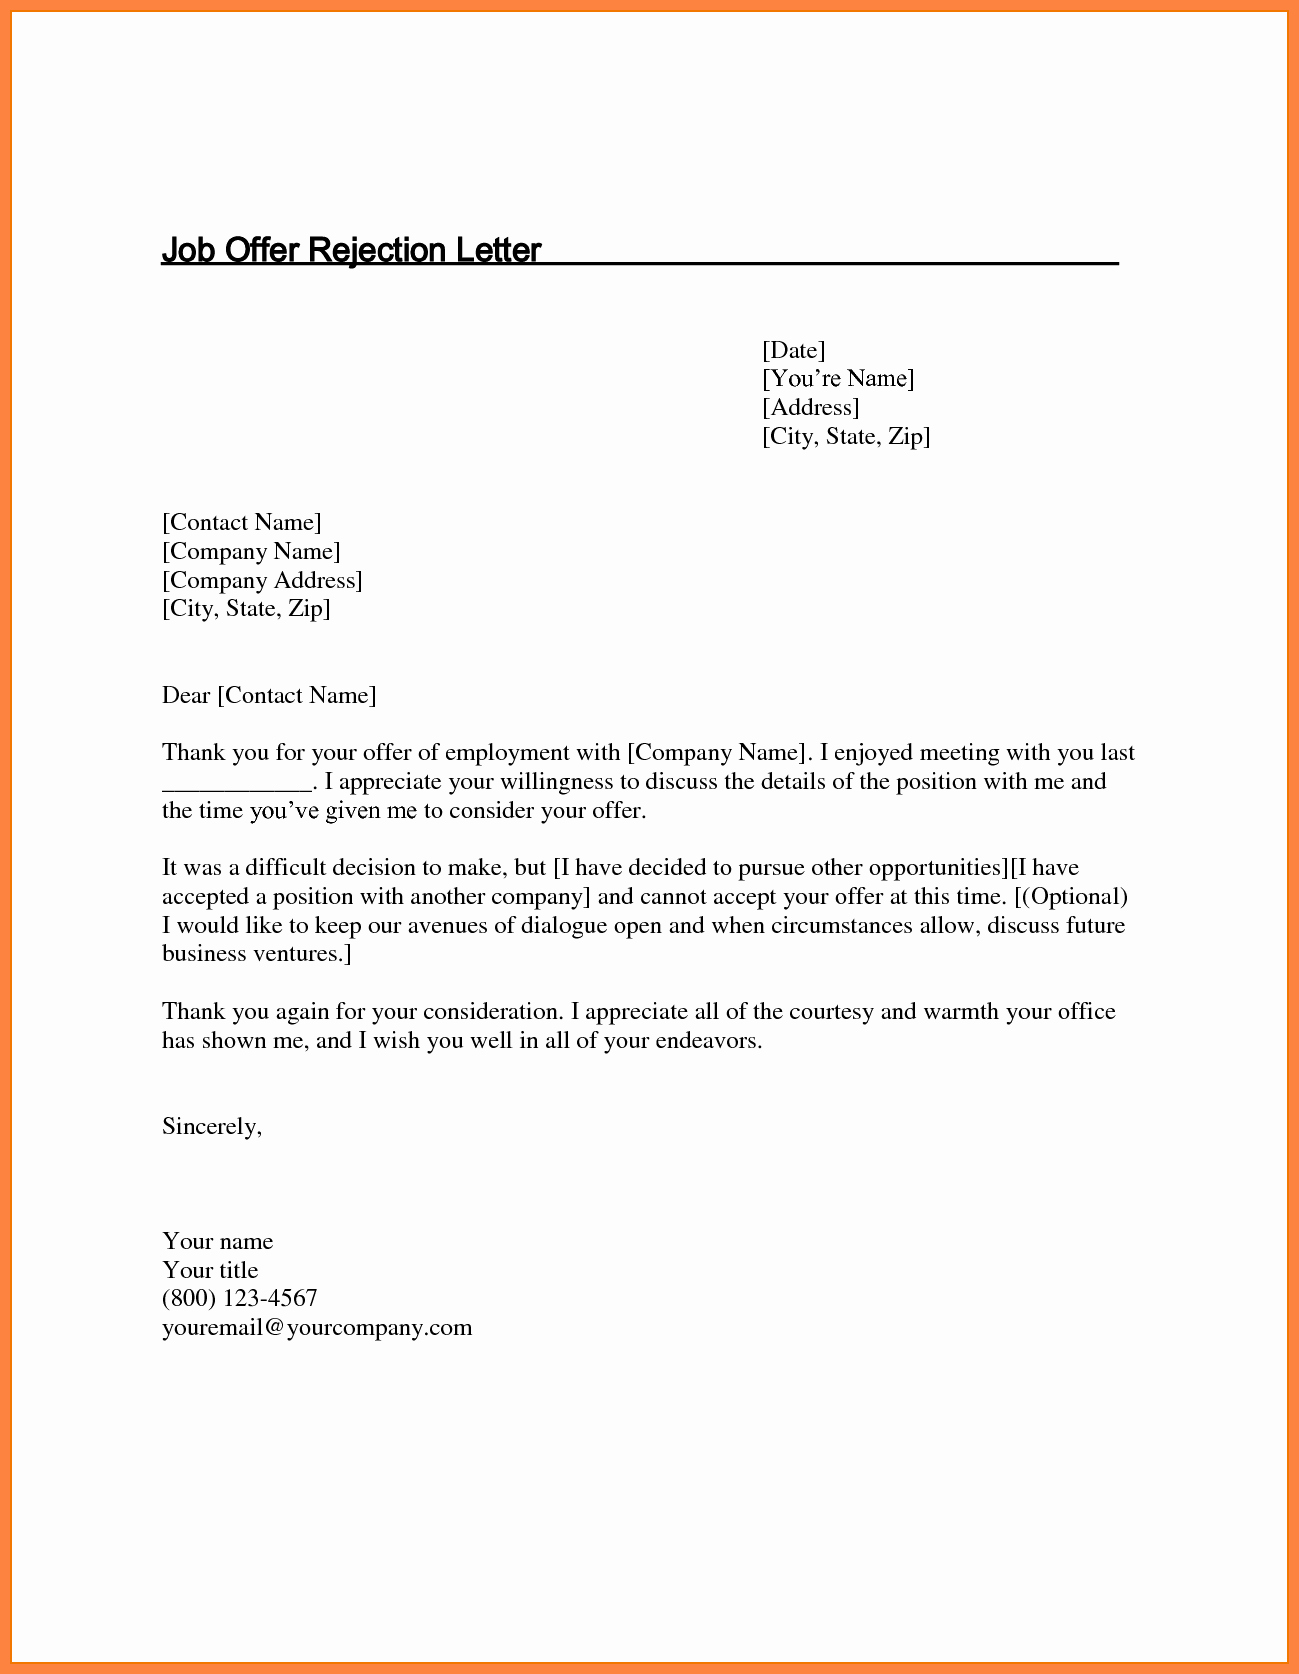 Job Offer Thank You Letter Luxury 5 Job Offer Rejection Letter